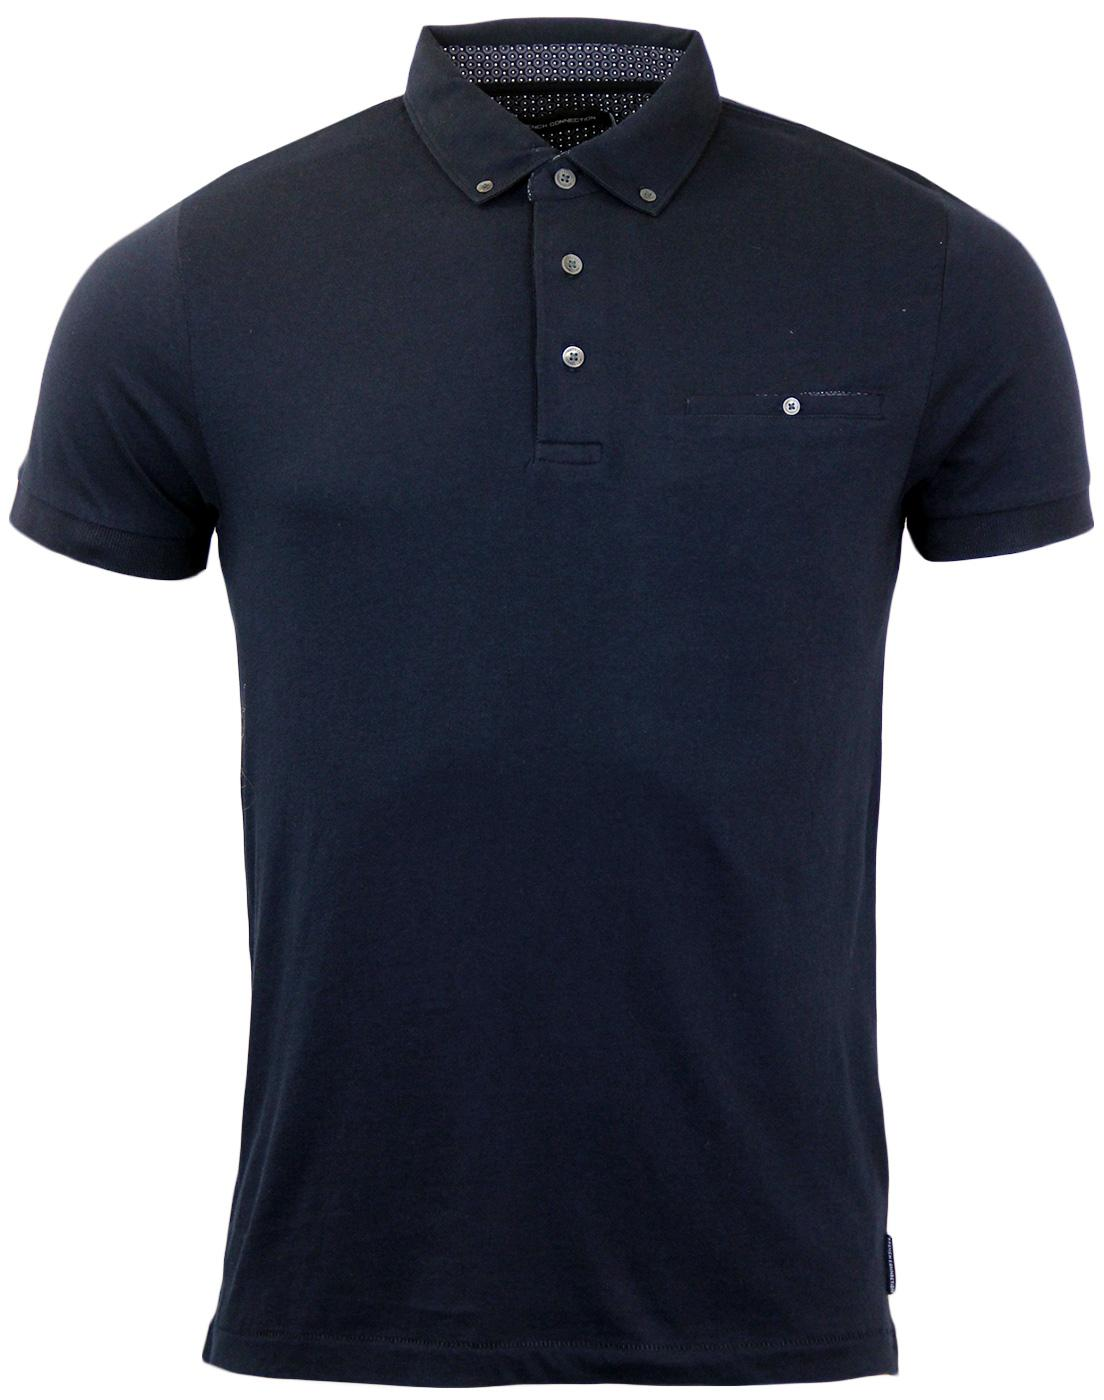 FRENCH CONNECTION Retro Mod Chest Pocket Polo